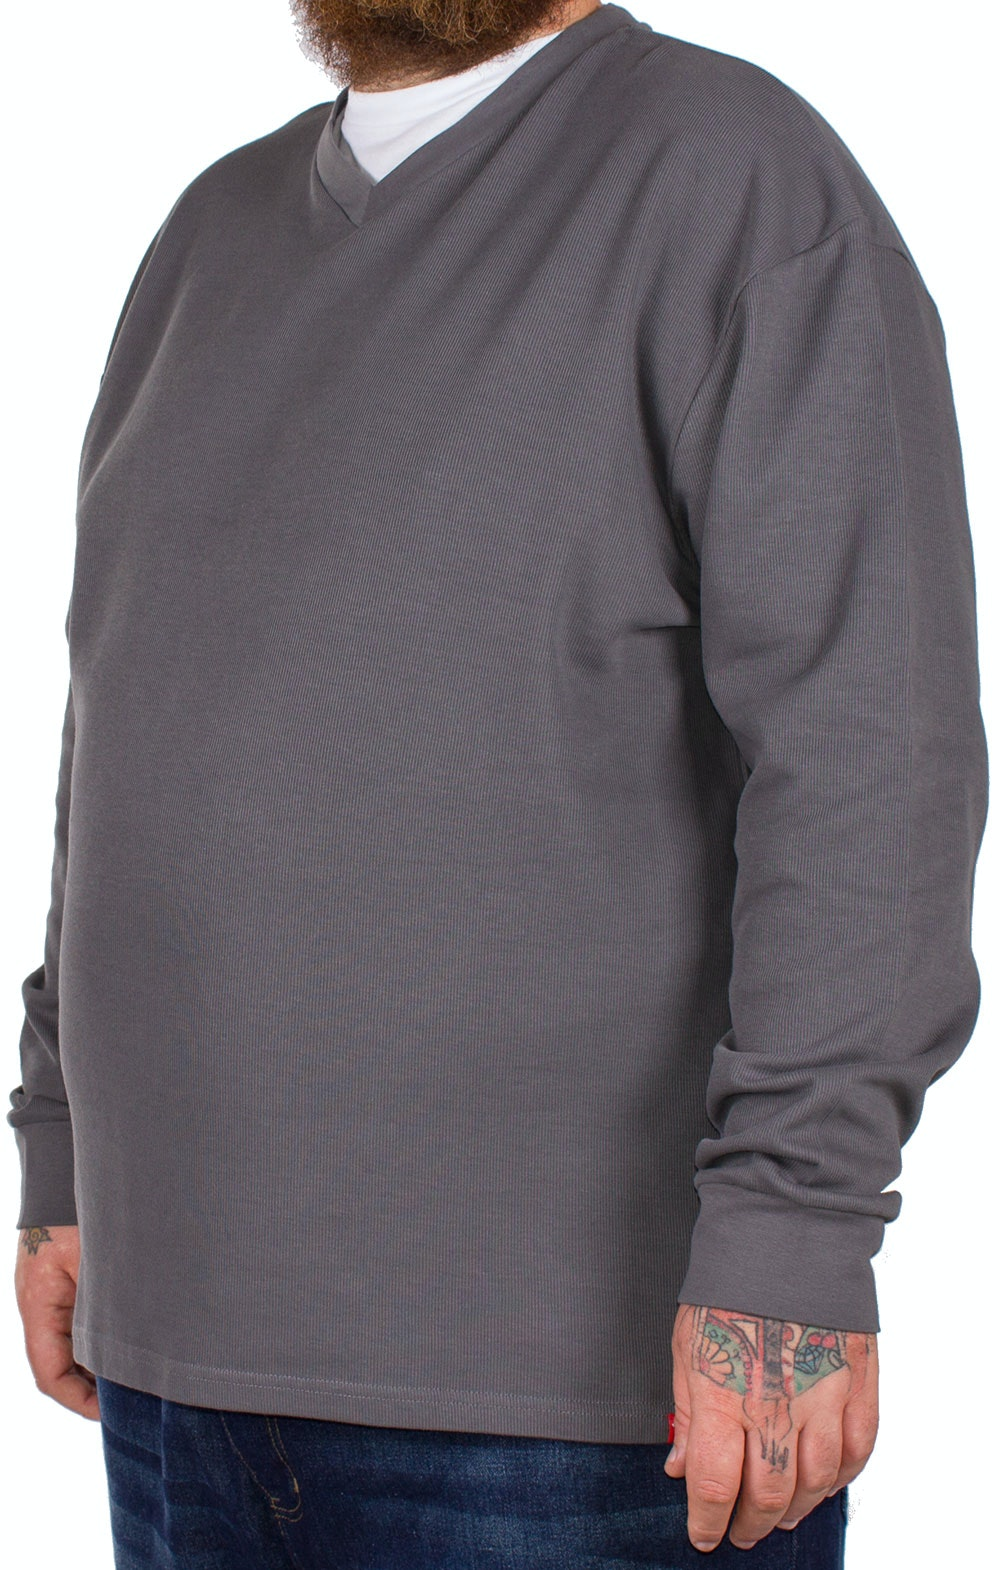 D555 Bliss Charcoal French Rib Layered V-Neck Jumper